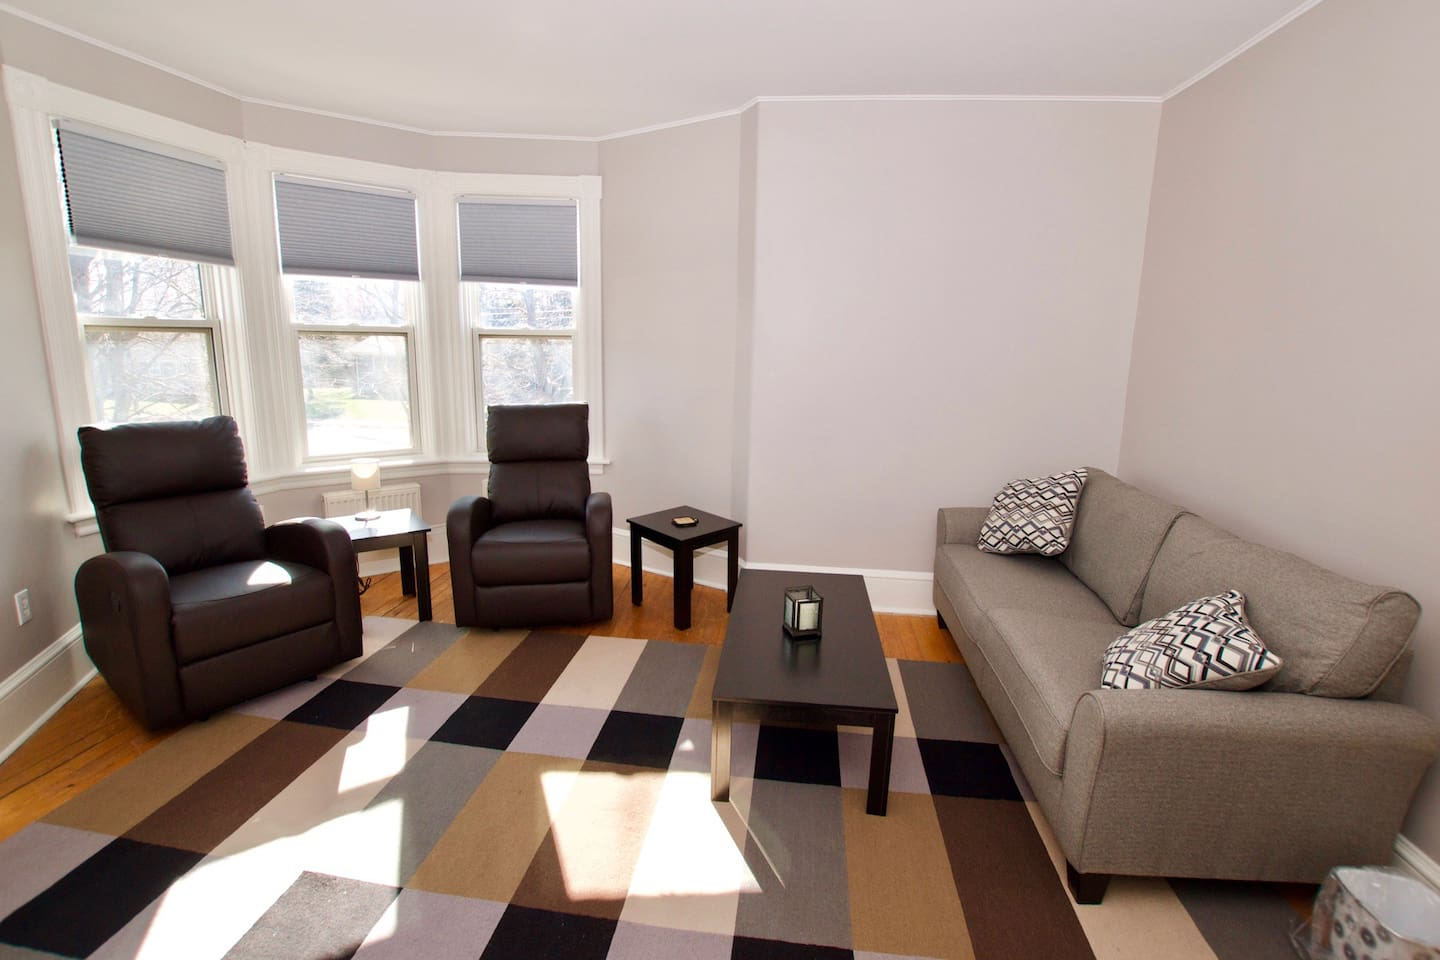 1 bedroom, 1 den with daybed! Modern apartment in a heritage building.